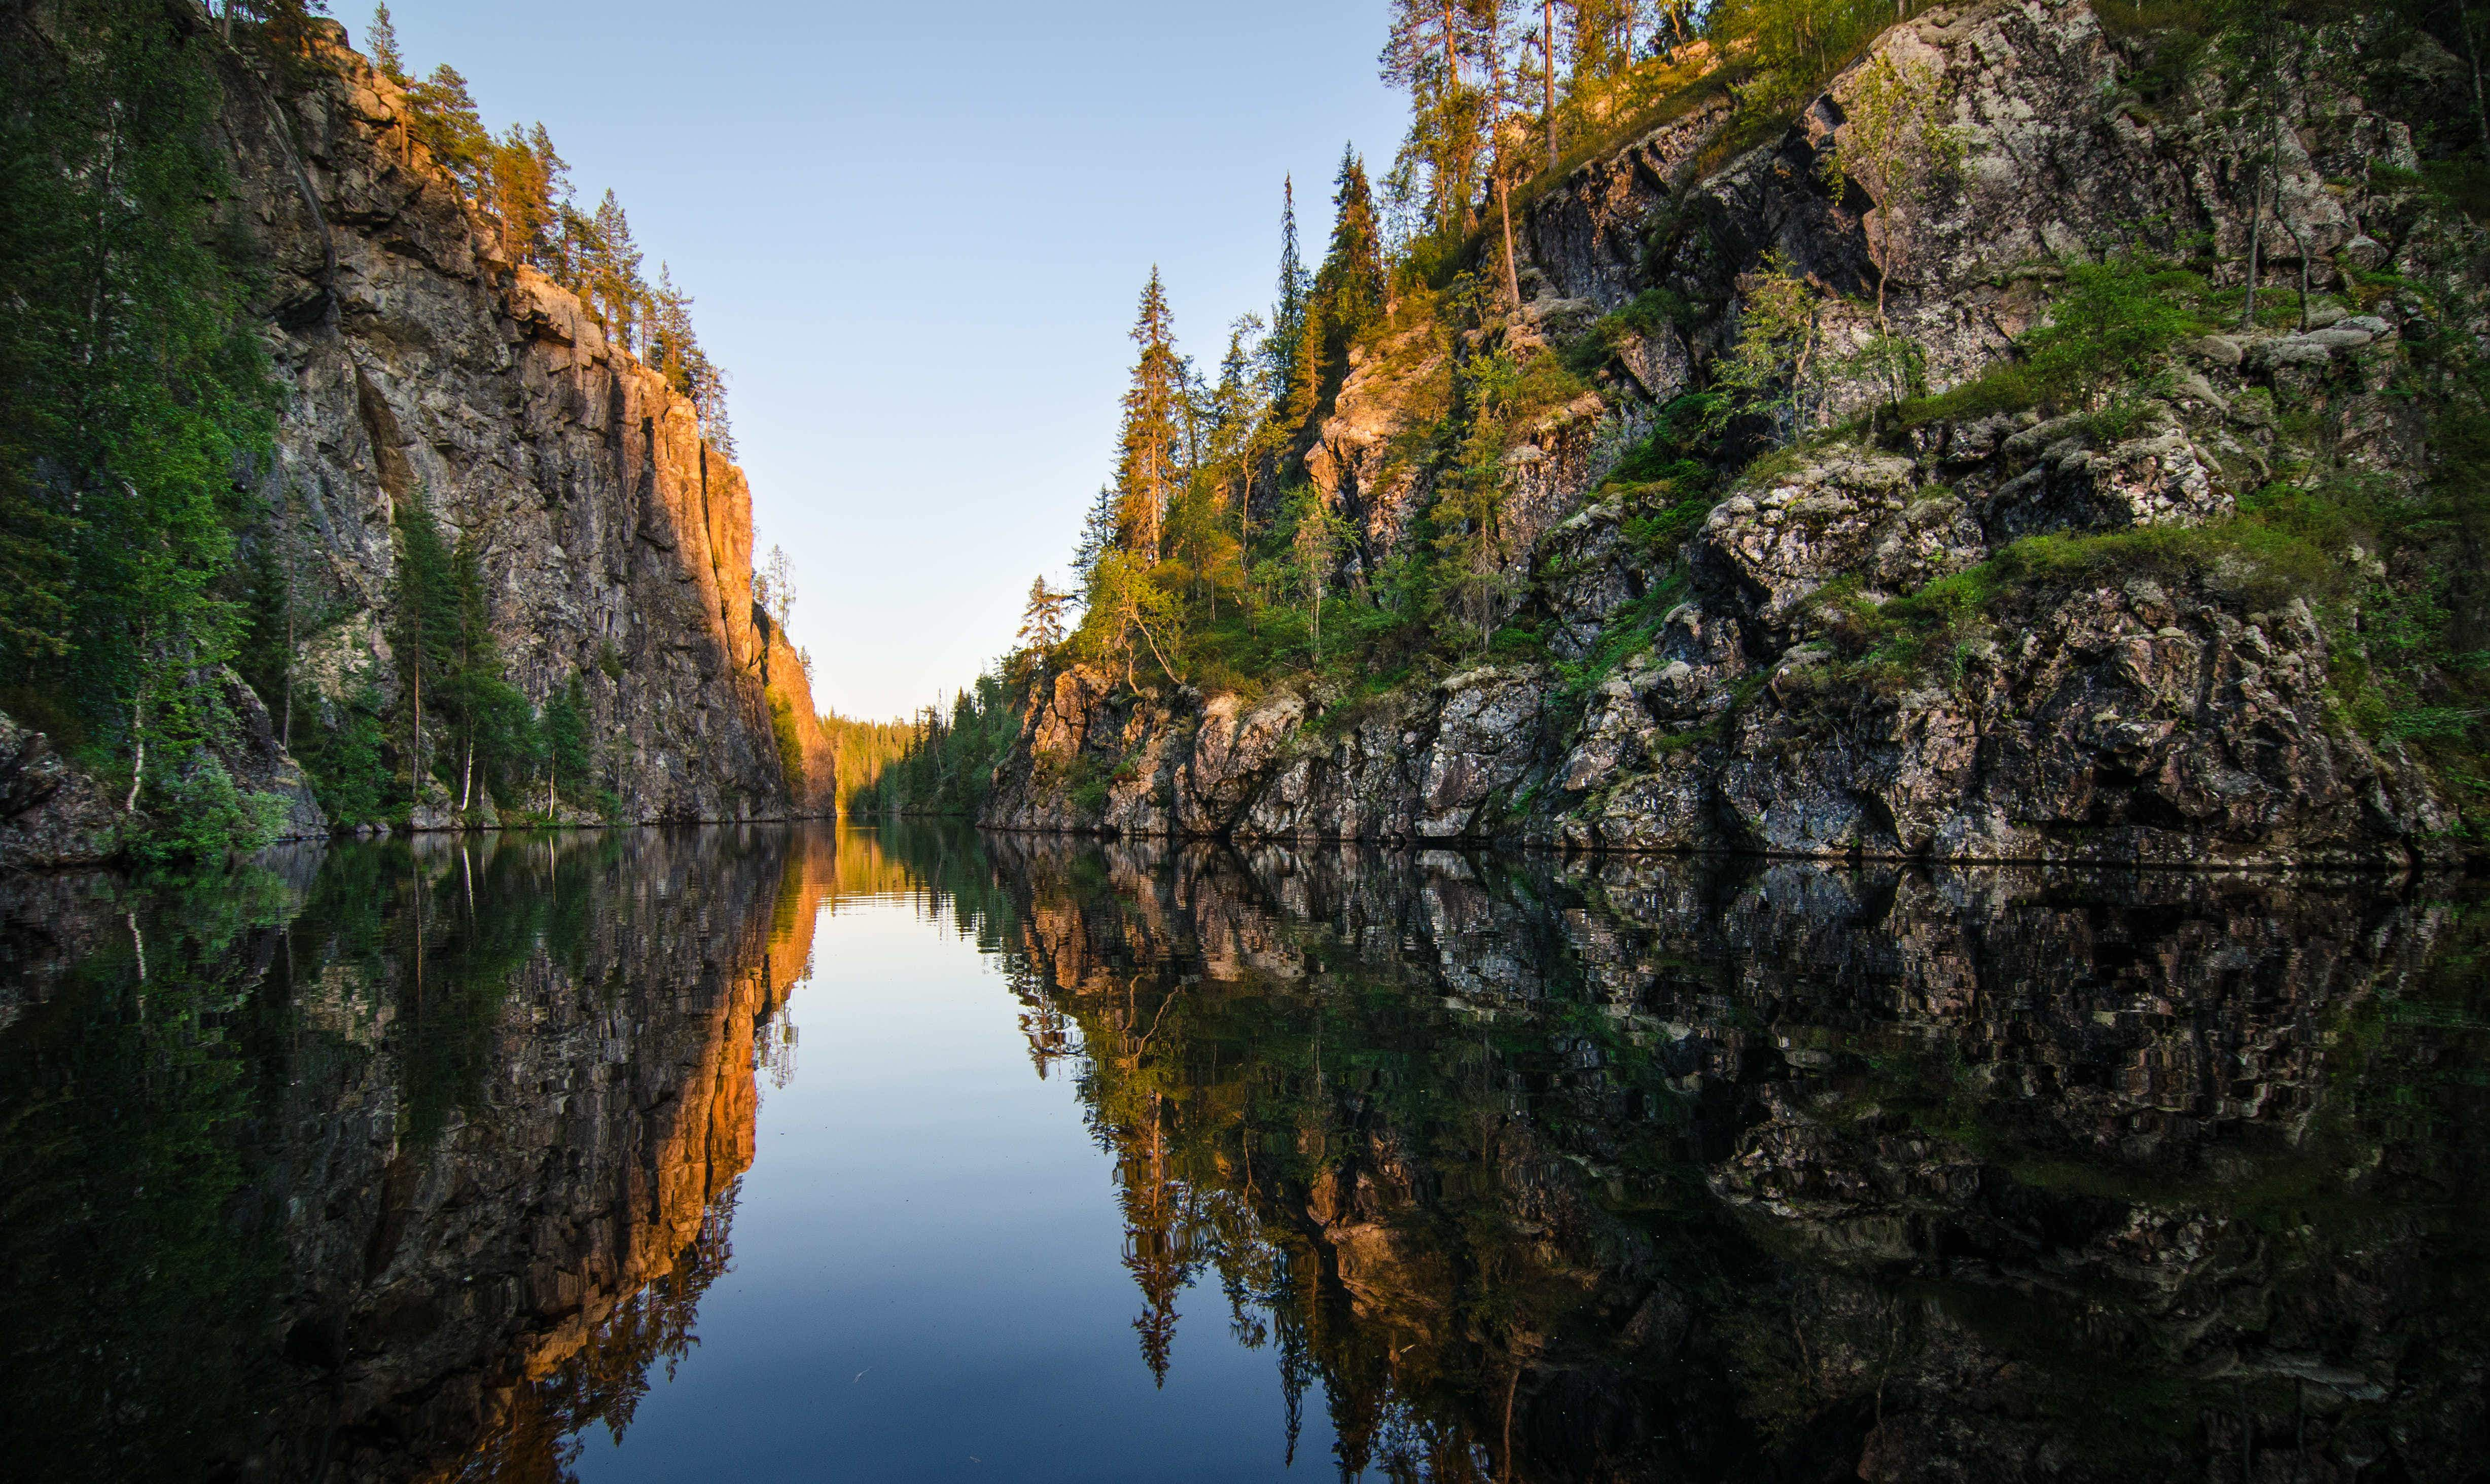 Finland's newest national park is opening this week as the country celebrates 100 years of independence